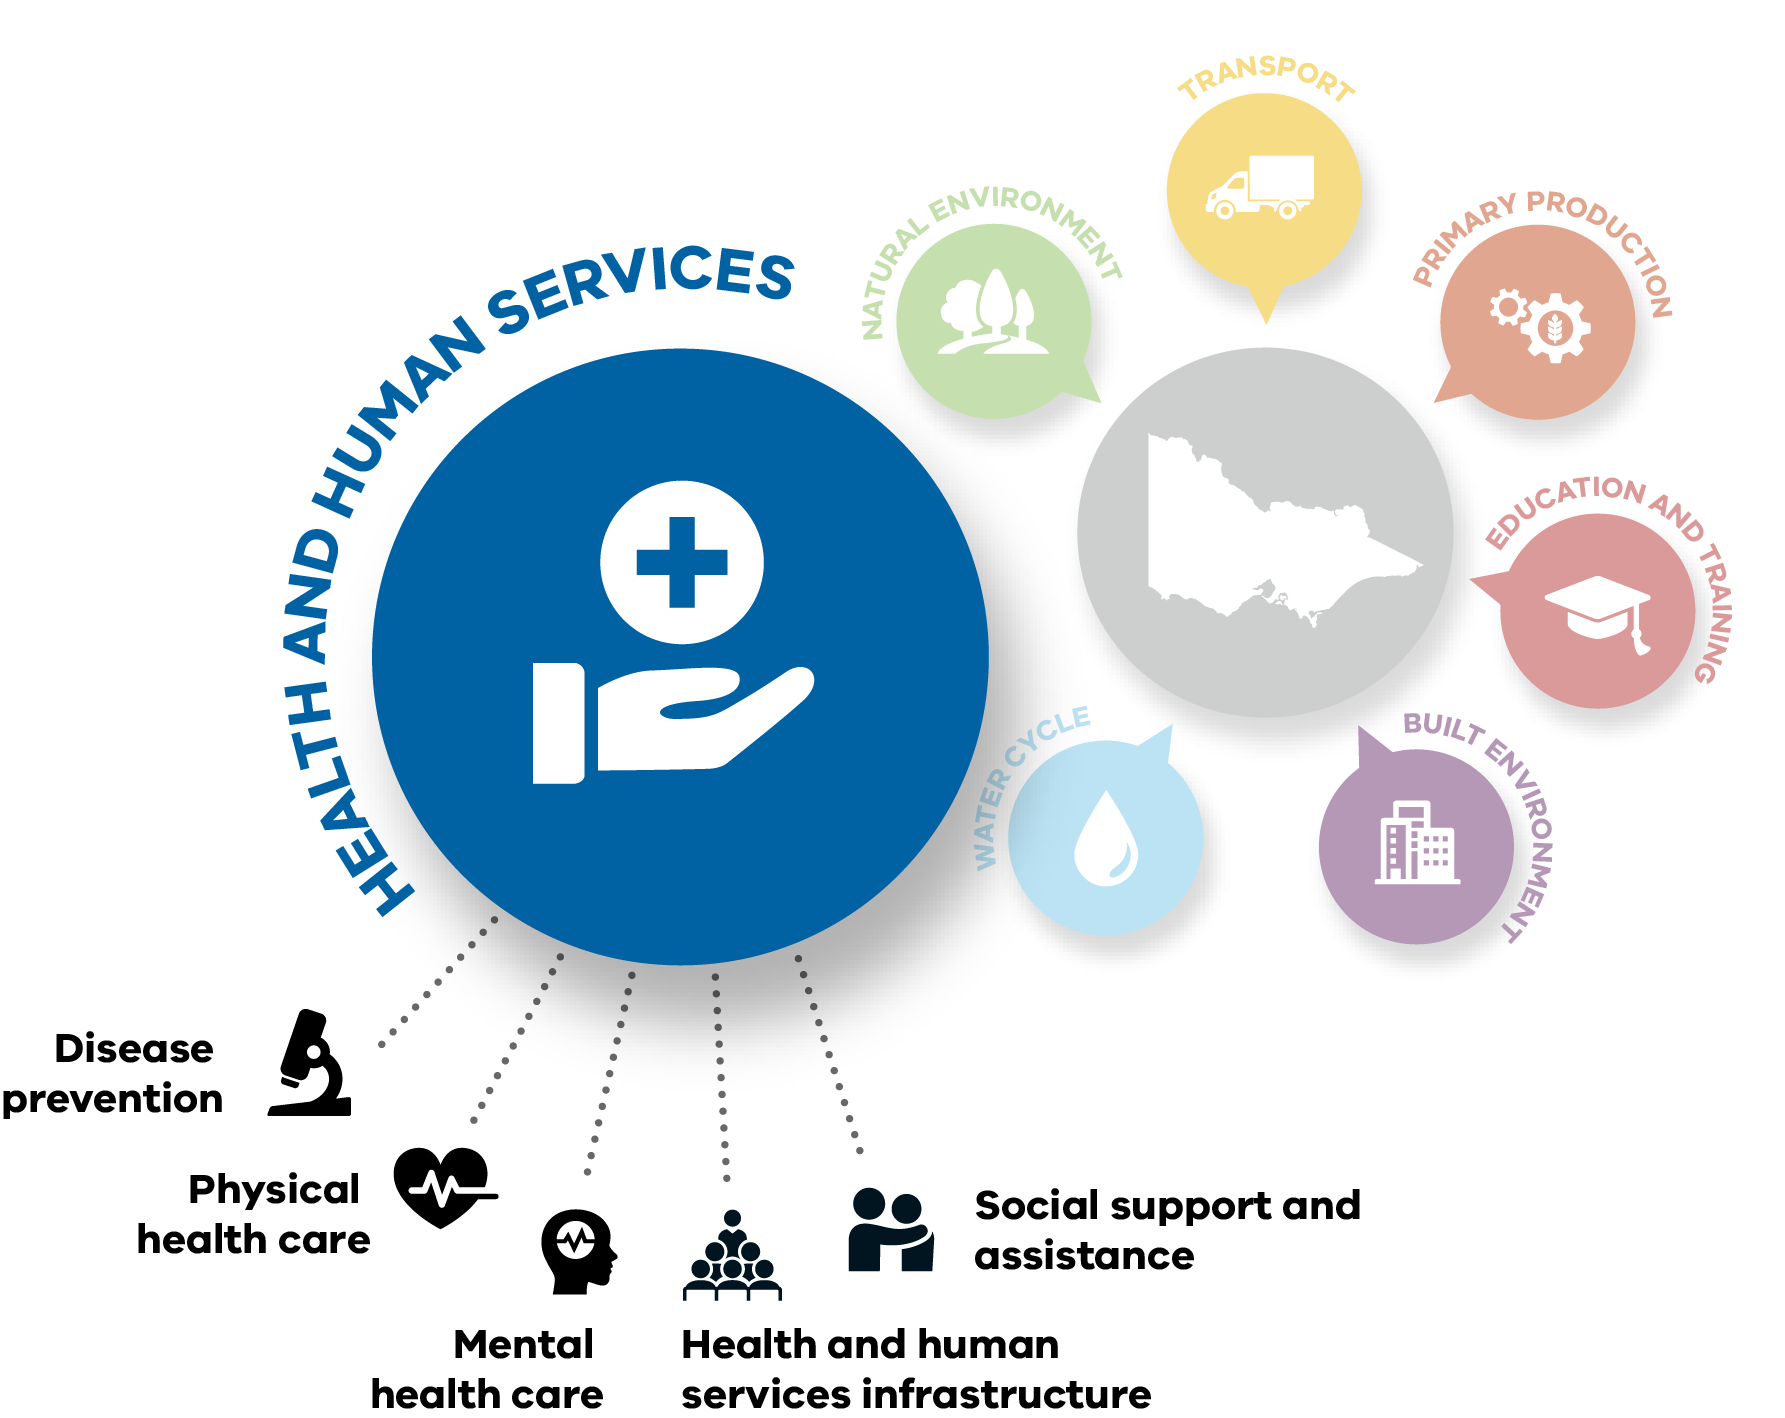 The Health and Human Services system includes disease prevention, physical health care, mental health care, health and human services infrastructure, and social support and assistance. It is one of seven systems creating Climate Change Adaptation Action Plans.